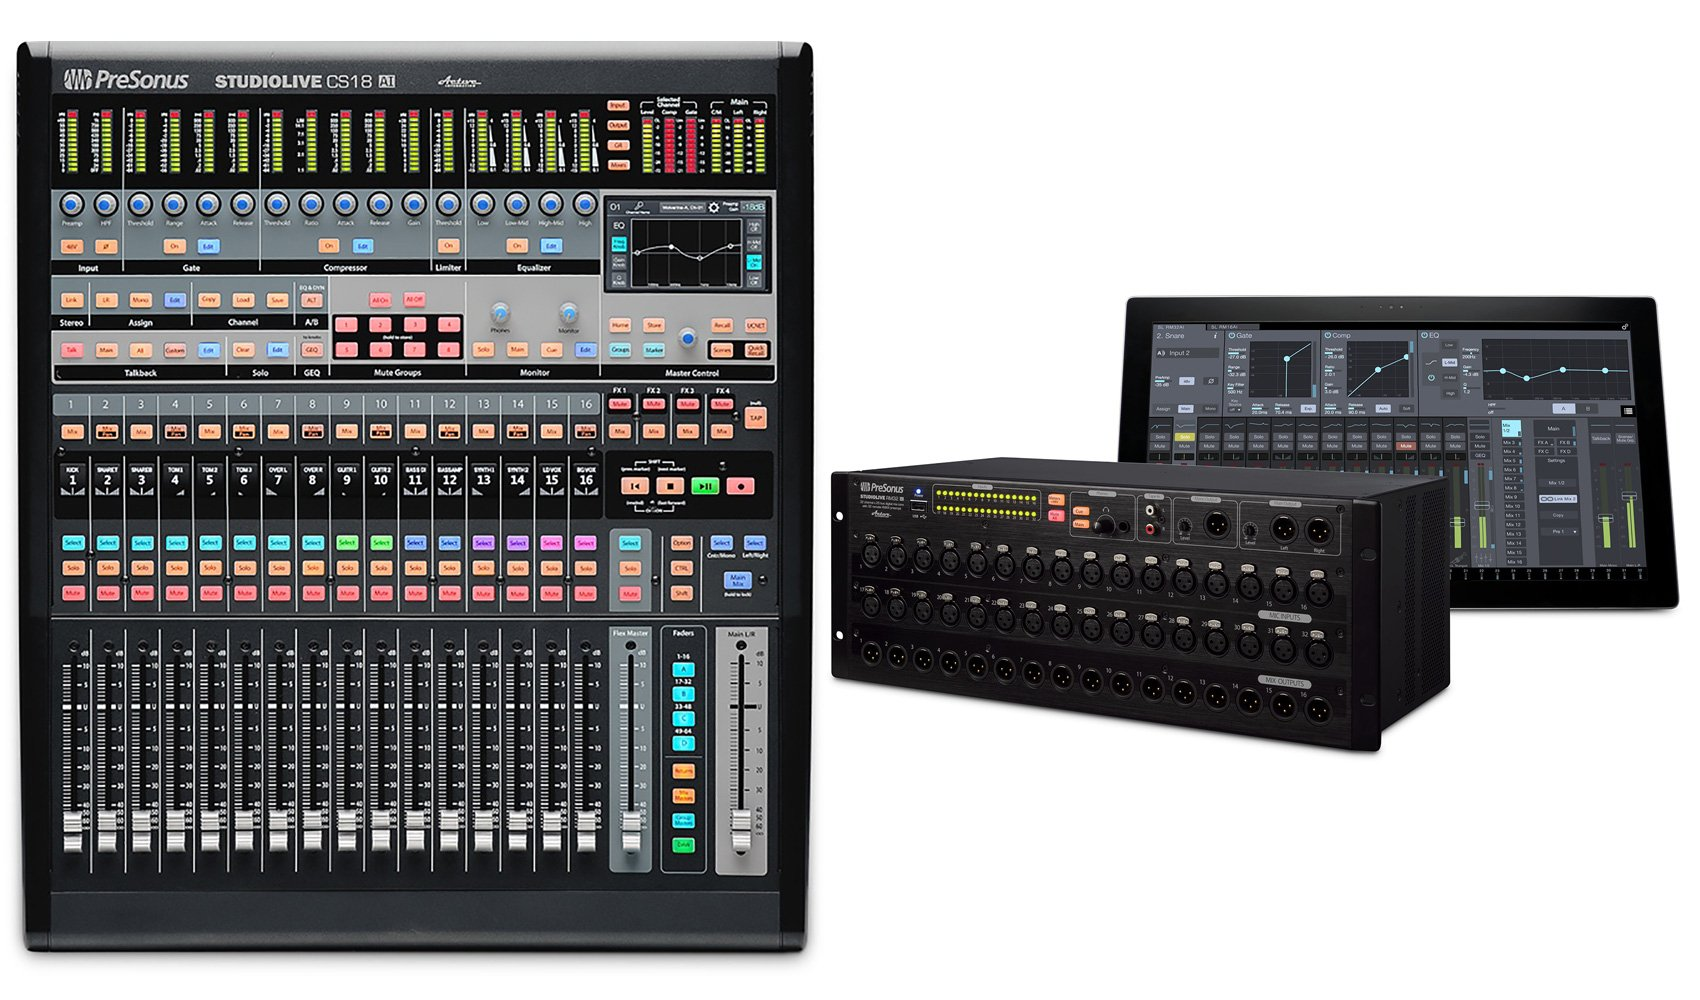 Package: PreSonus StudioLive CS18AI With Ethernet, AVB Control Surface, 18 Moving Faders and 64 Controllable Channels + Presonus StudioLive RM32AI 32-Channel Rack Mount Digital Mixer with 32 Preamps